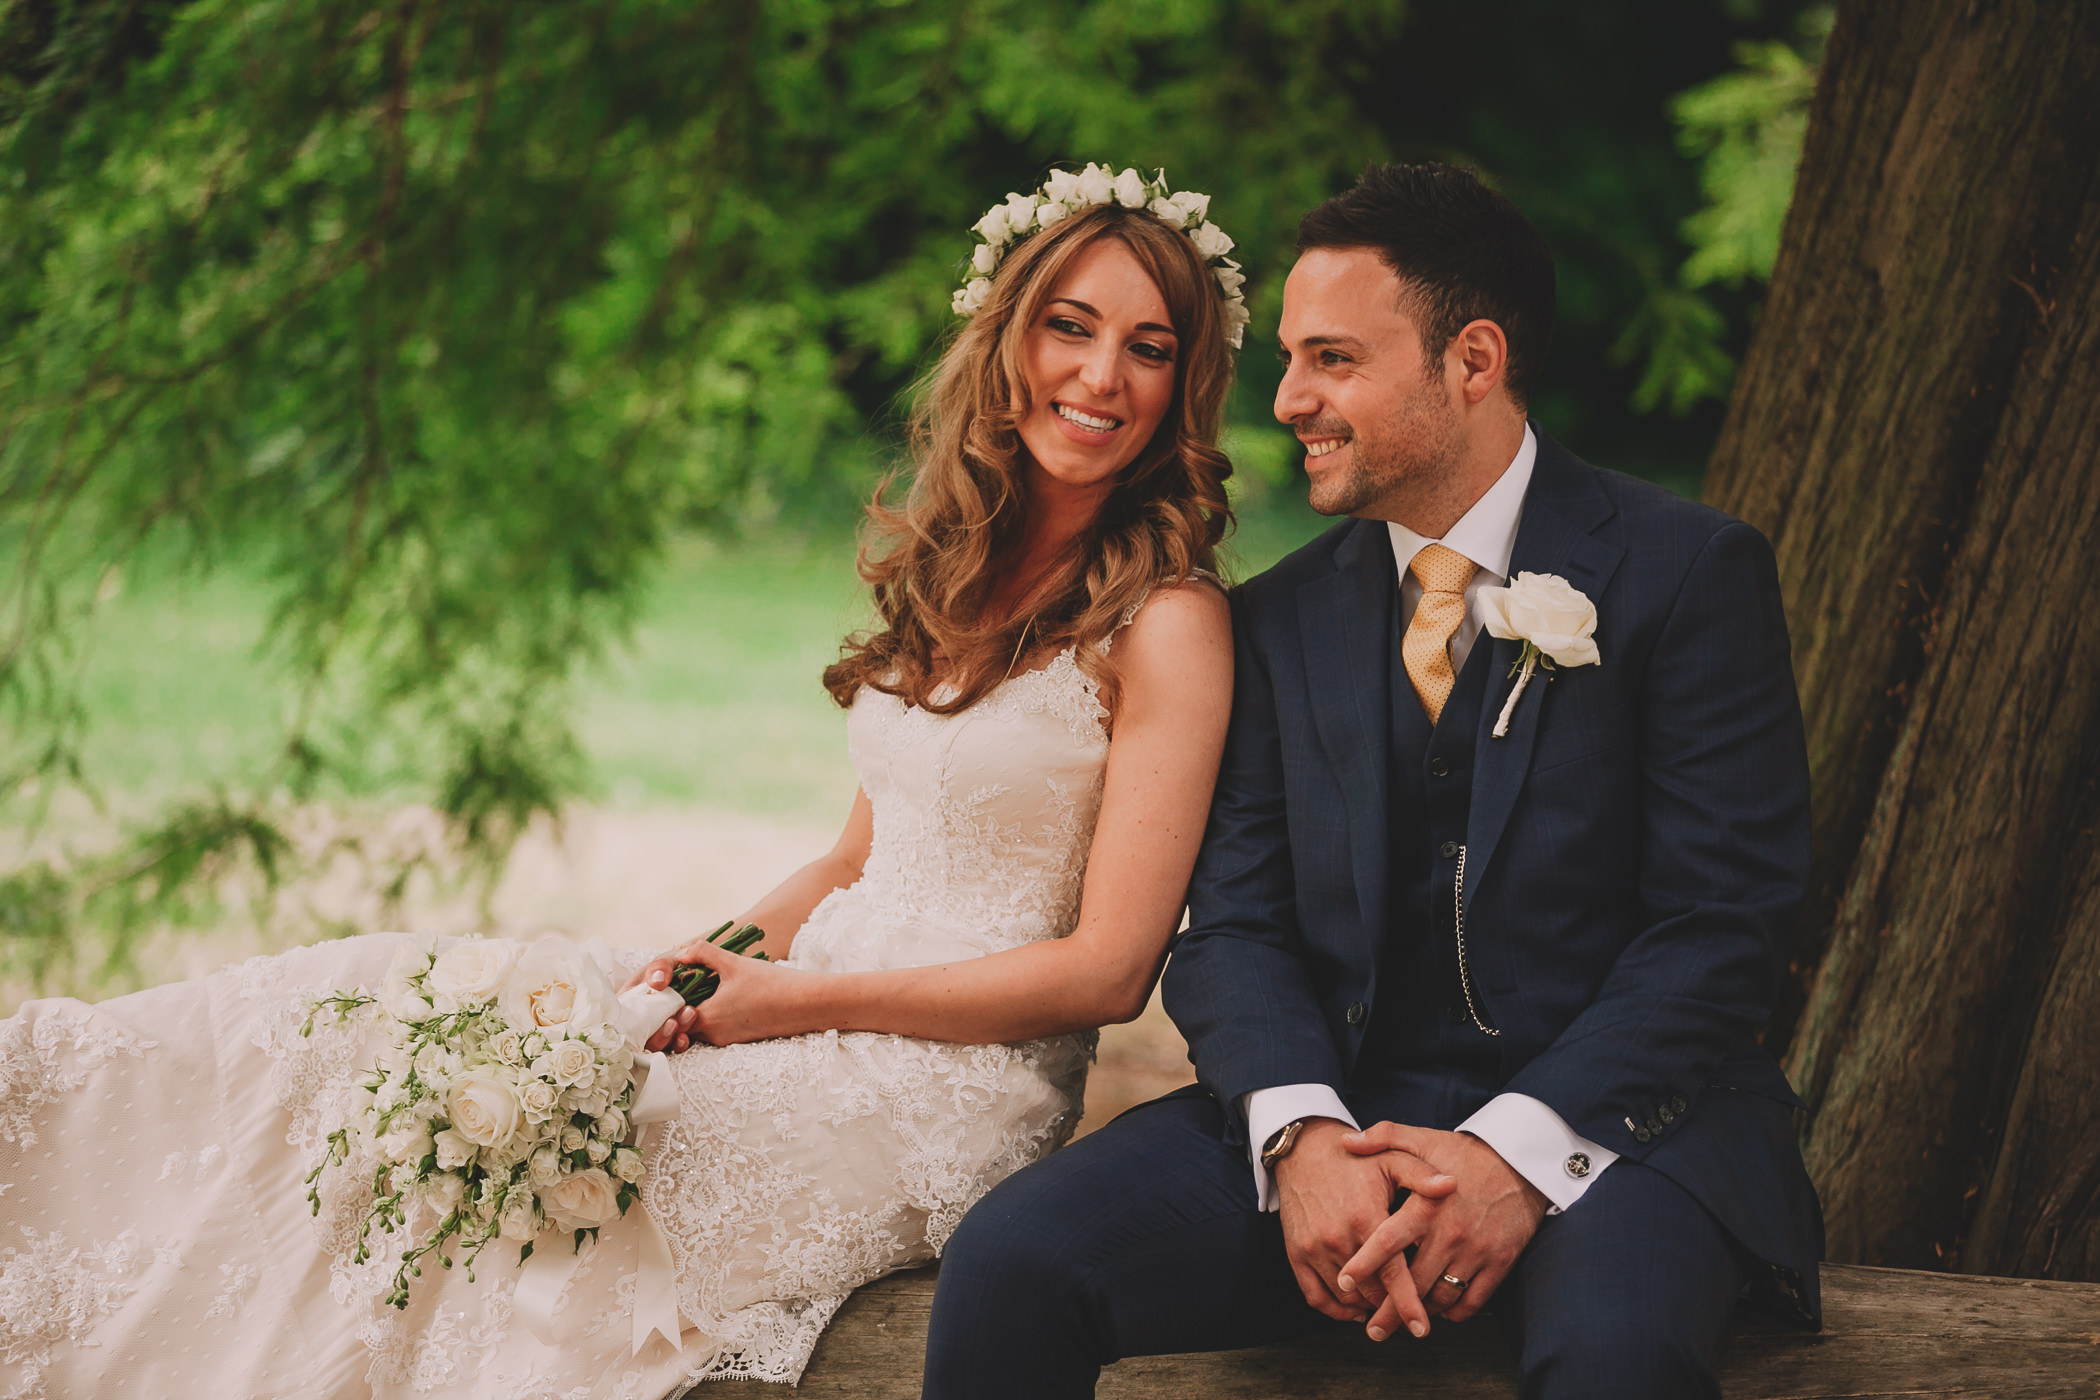 wedding photography of the bride and groom at syon park isleworth